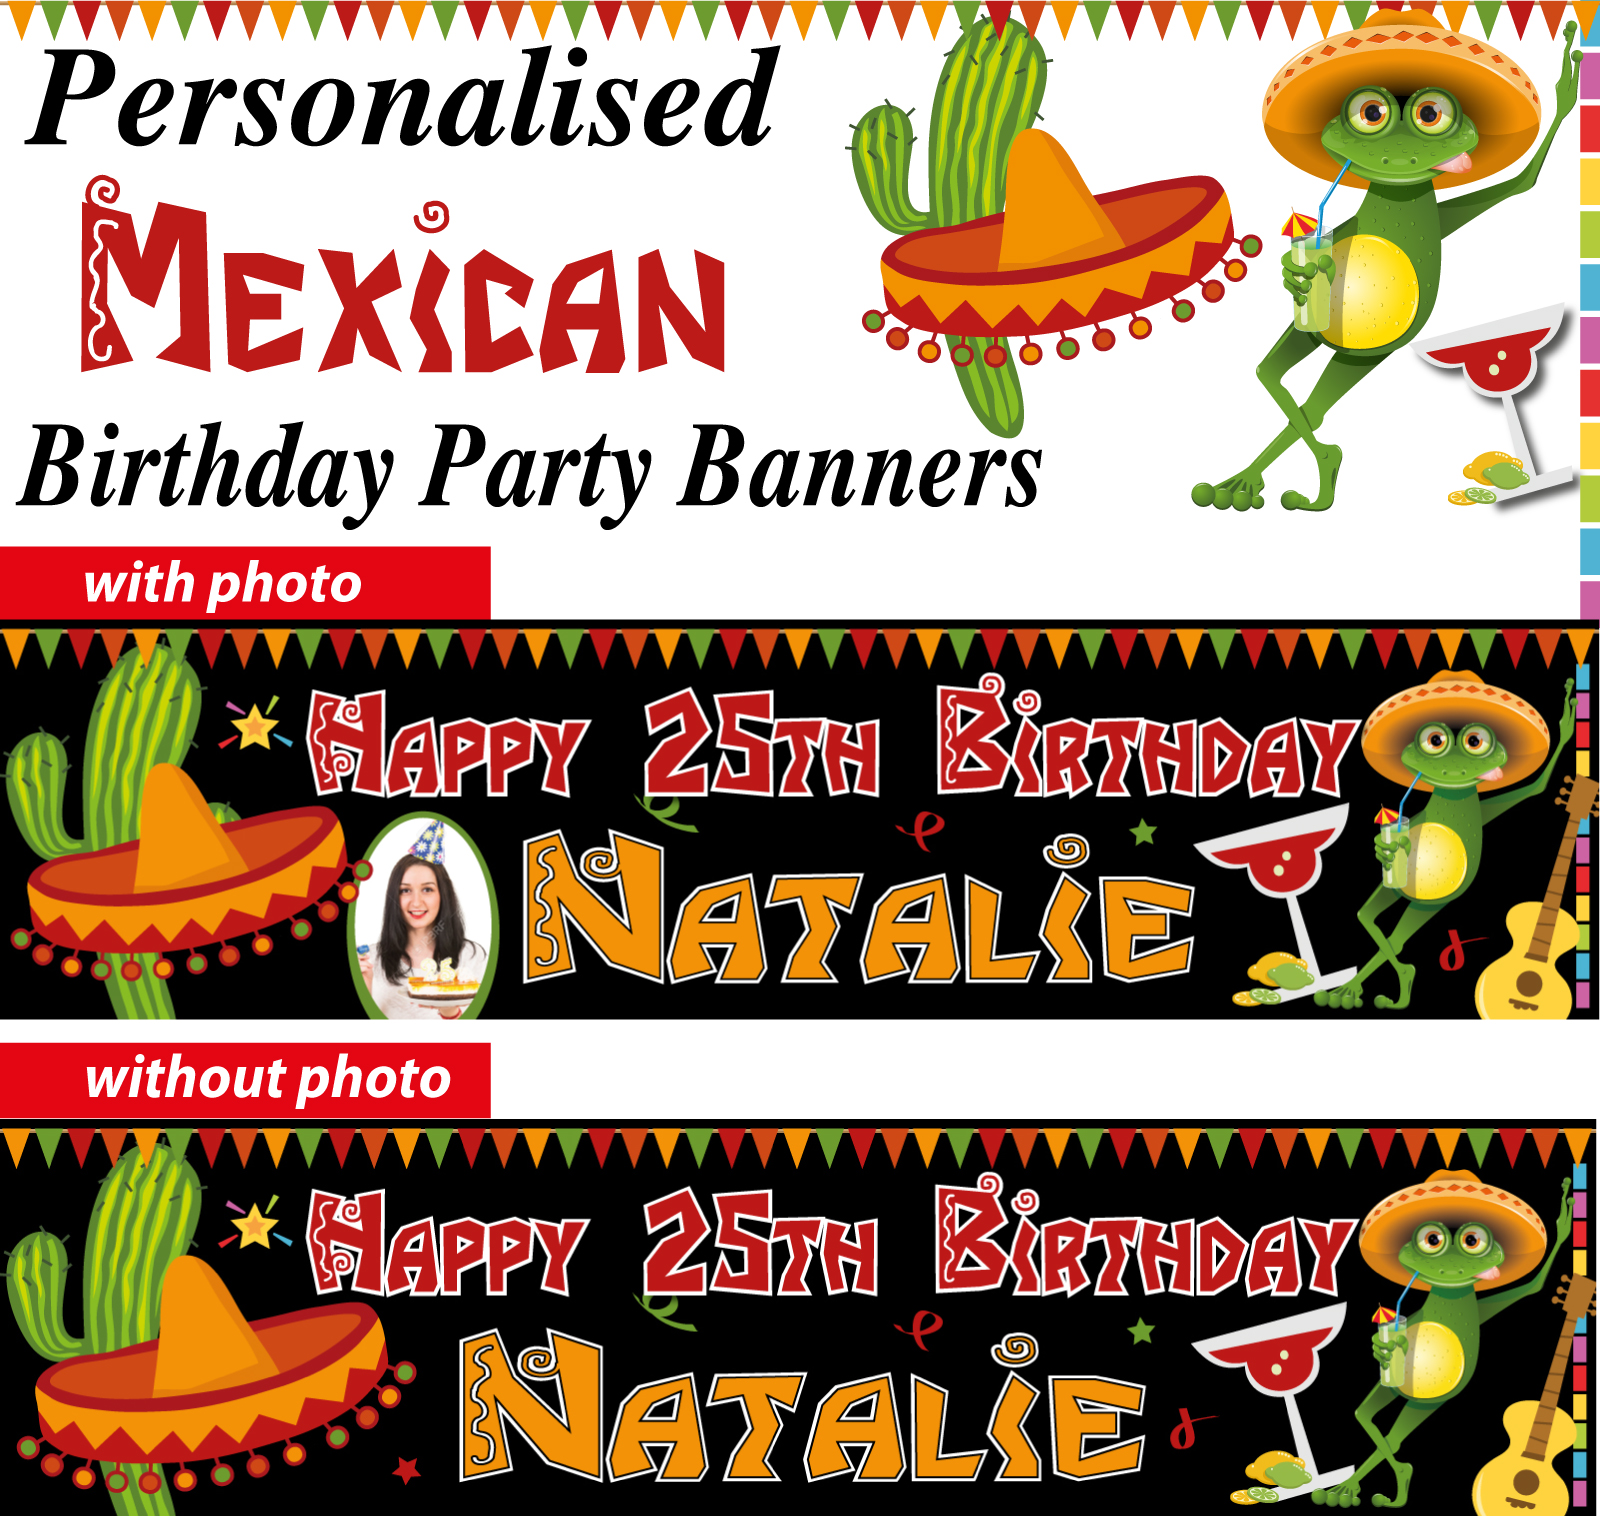 mexican-birthday-banner-ebay.jpg